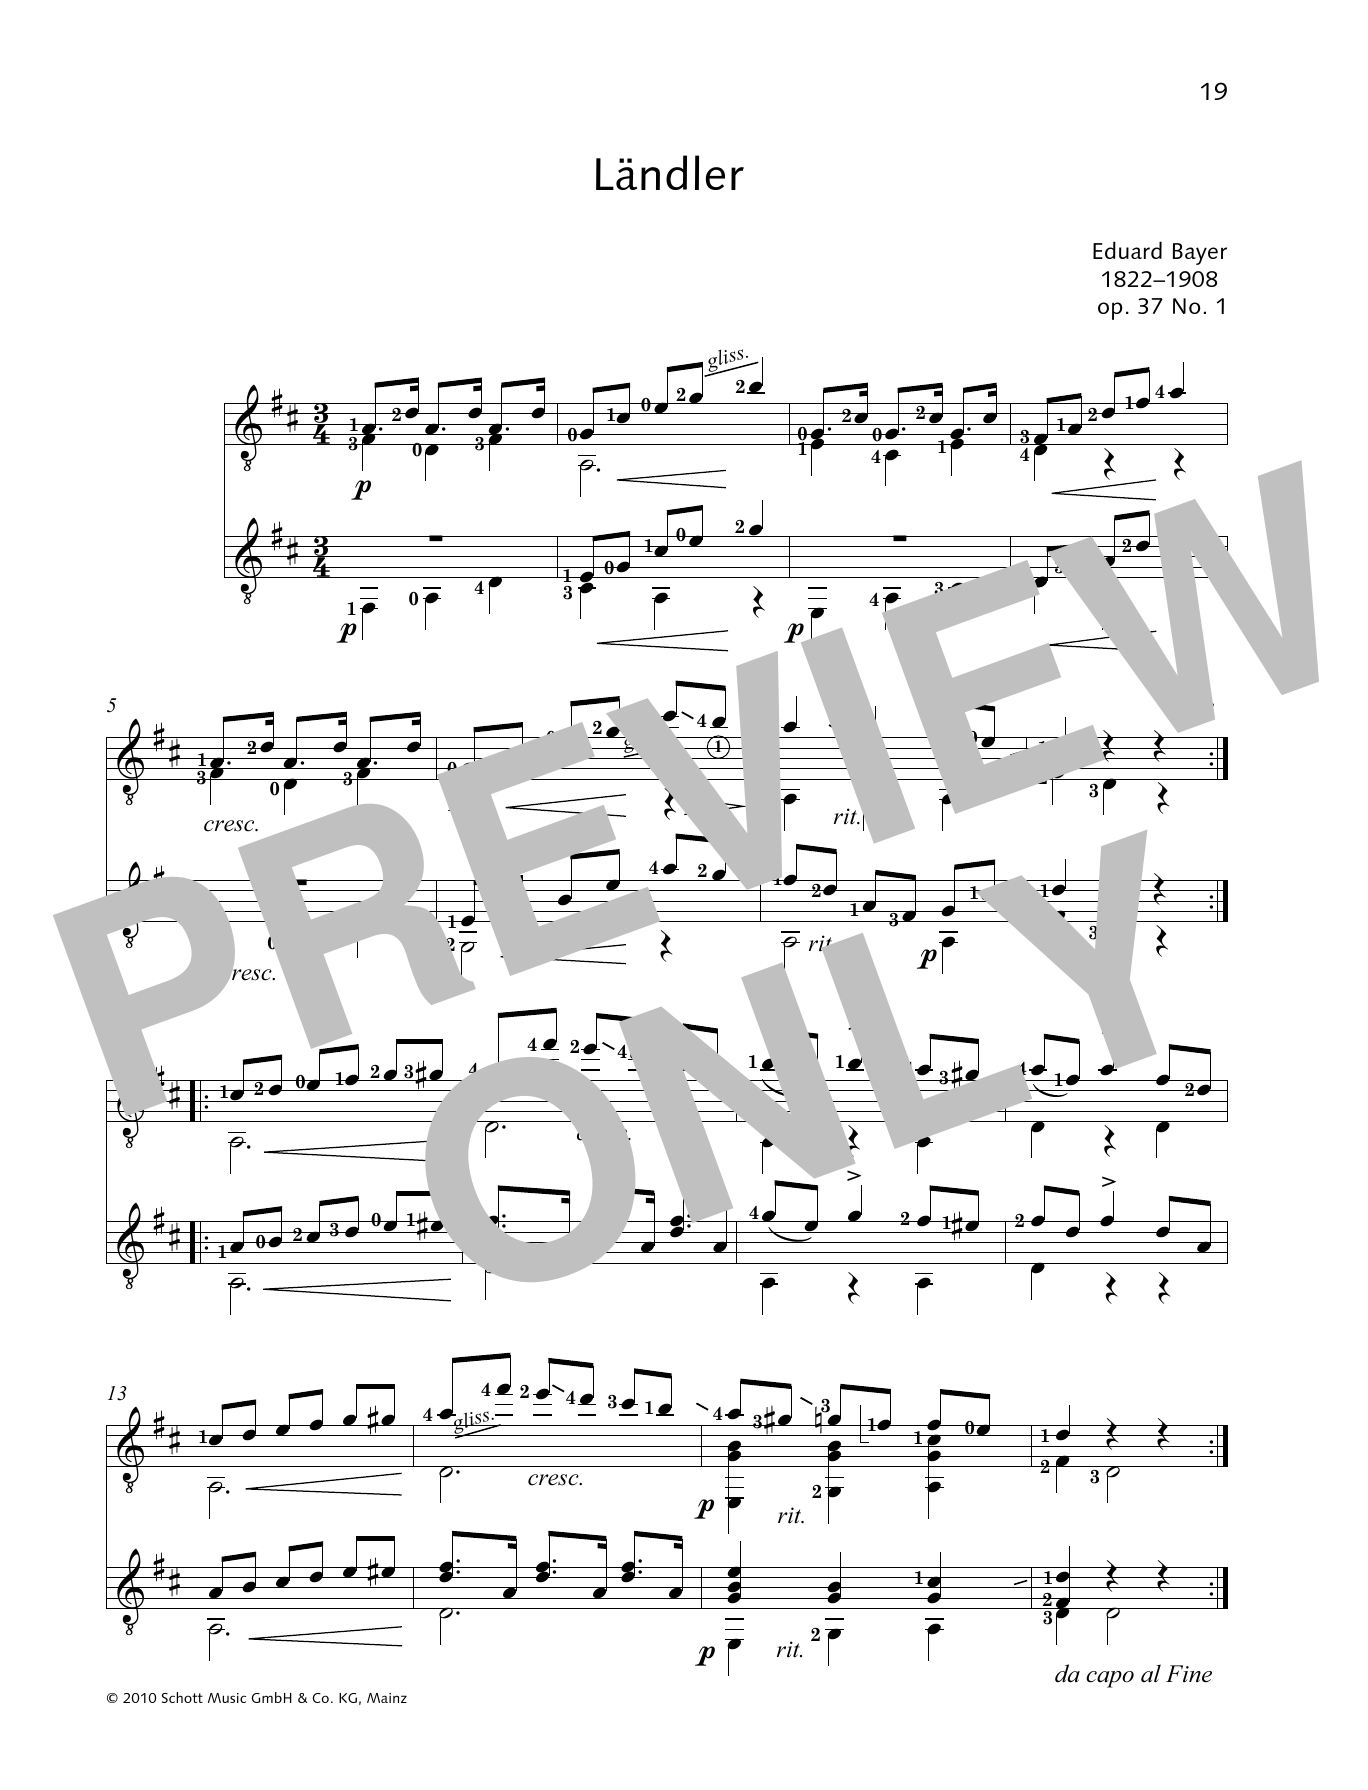 Landler - Full Score Sheet Music